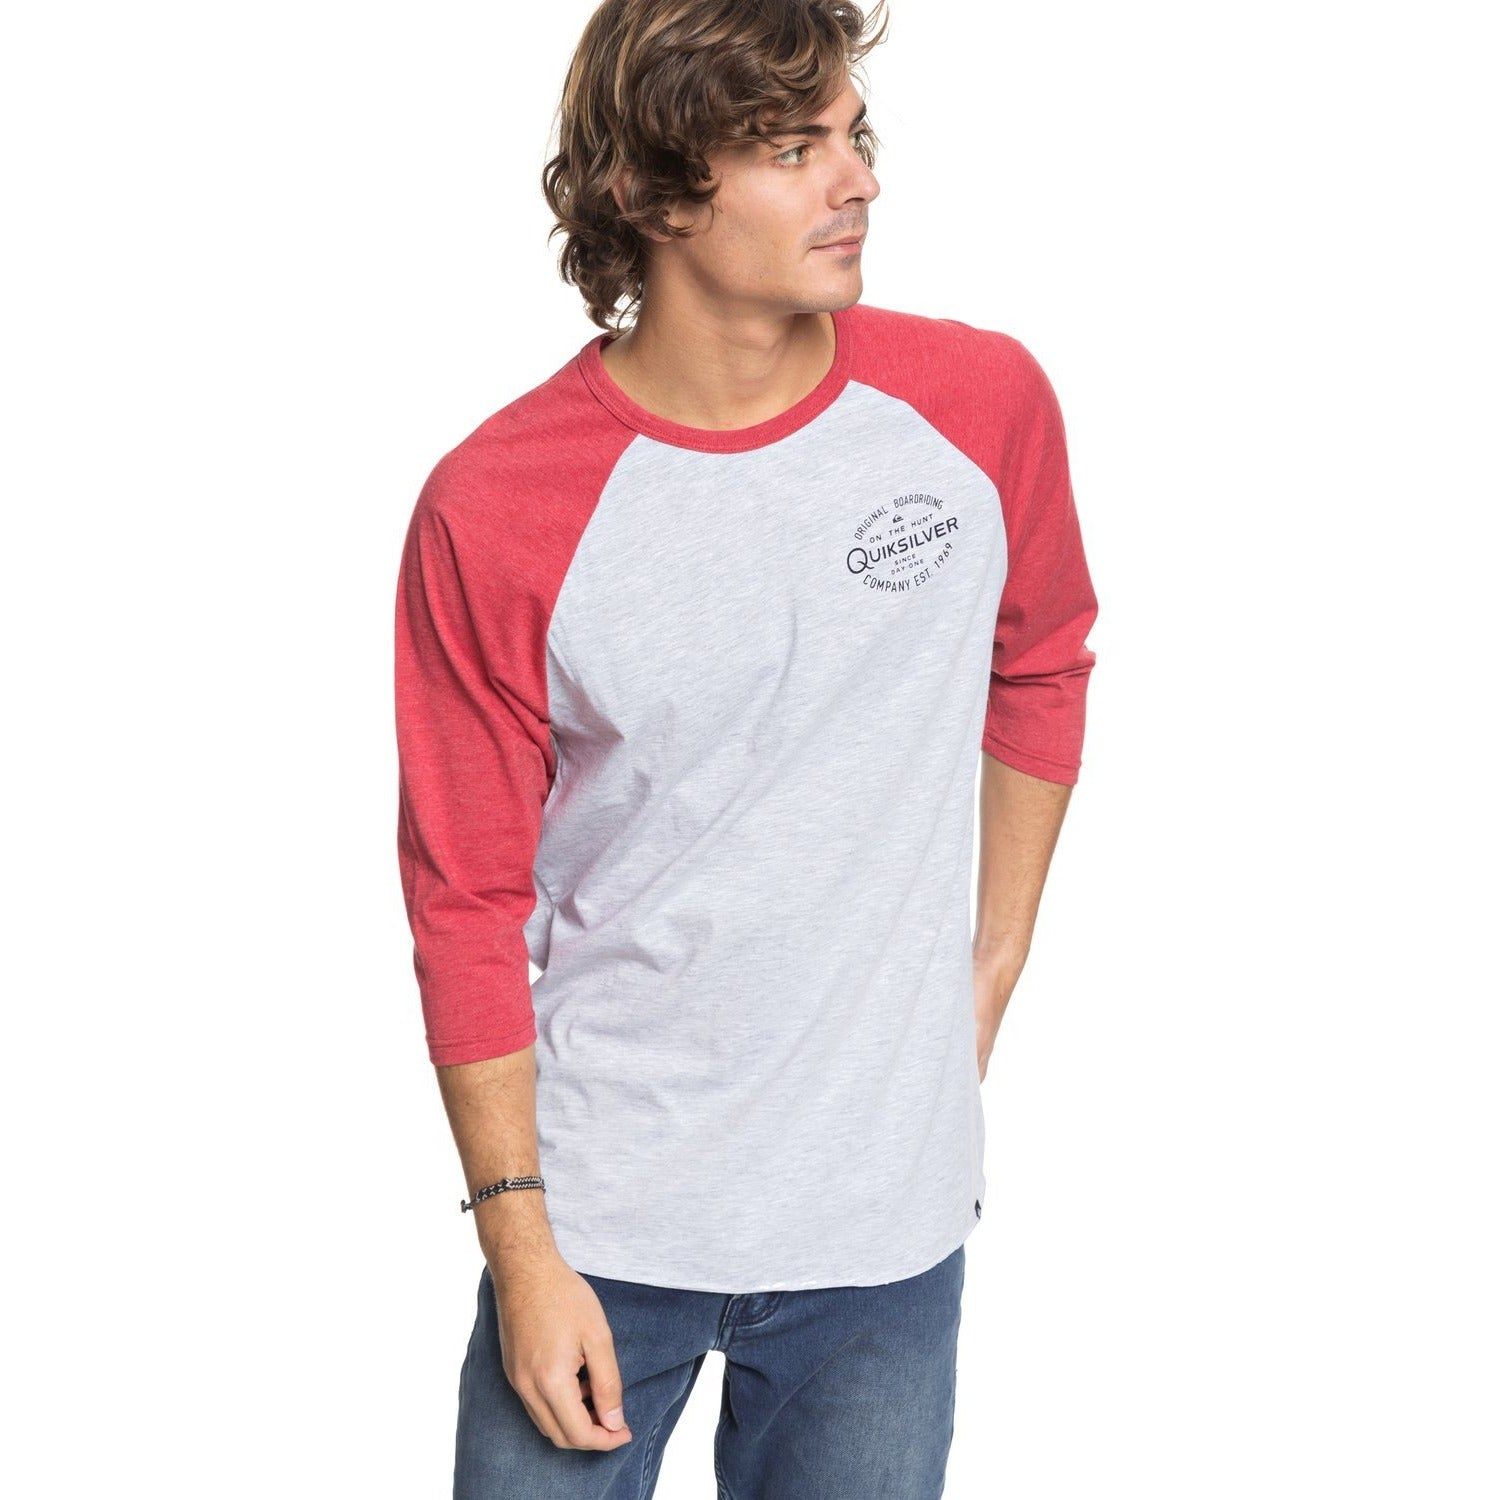 Quiksilver Hunters Patch 3/4 Shirt - 88 Gear